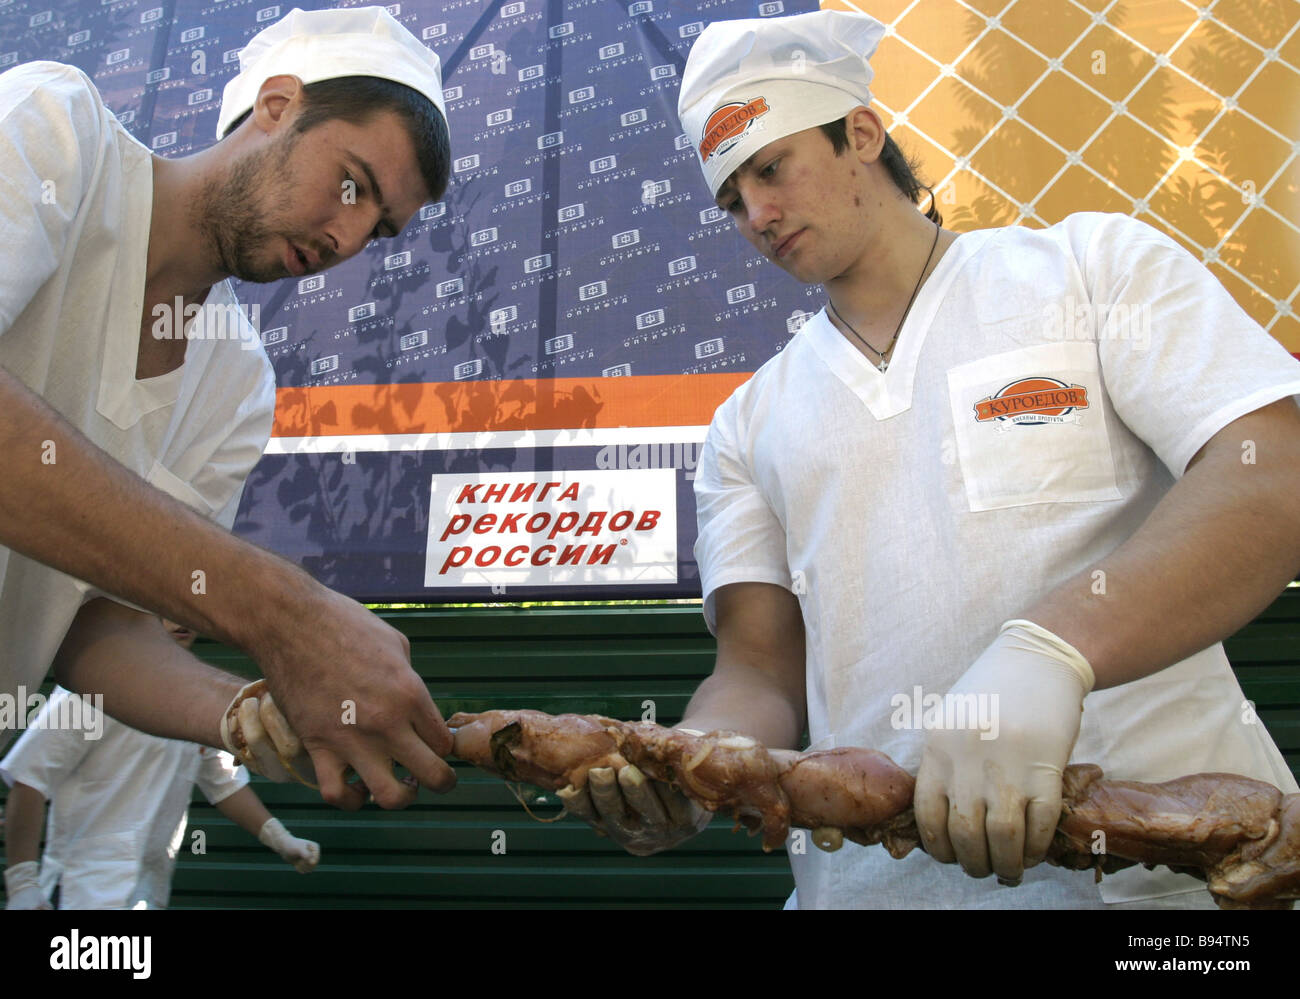 The longest chicken shashlik 70 meters made of 150 kg of poultry by 25 cooks has made it into the Guinness Book - Stock Image